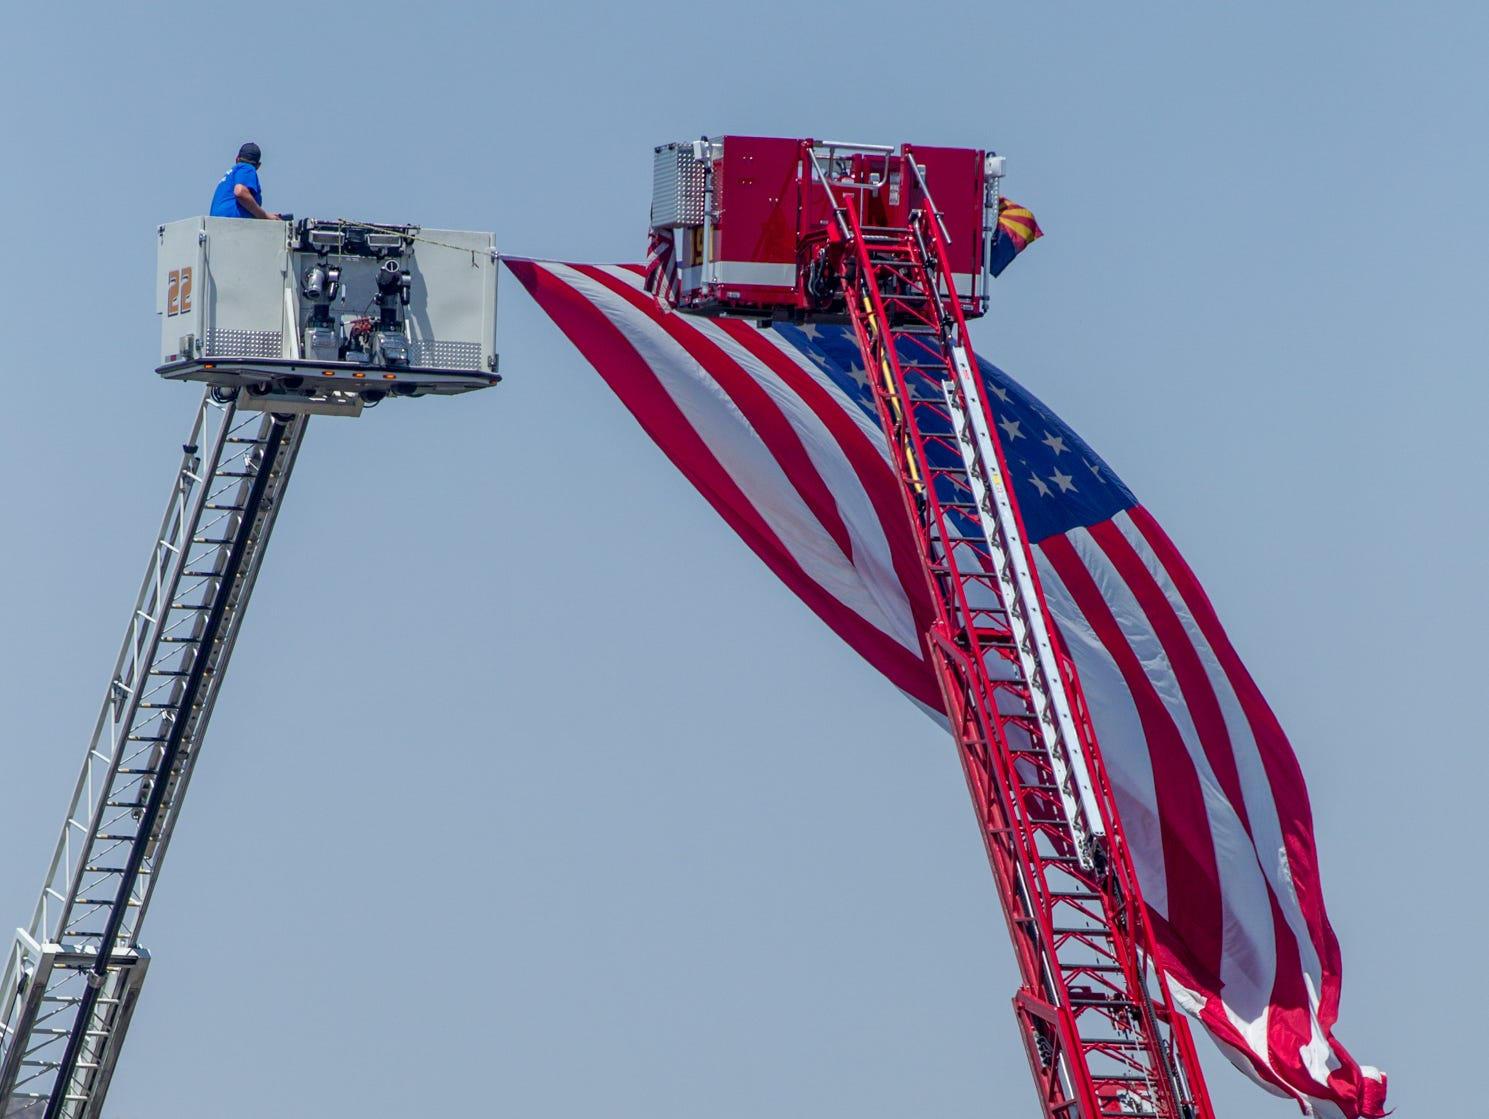 An American flag waves outside Christ's Church of the Valley in Peoria on Aug. 3, 2018, during the funeral for fallen DPS  Trooper Tyler Edenhofer.